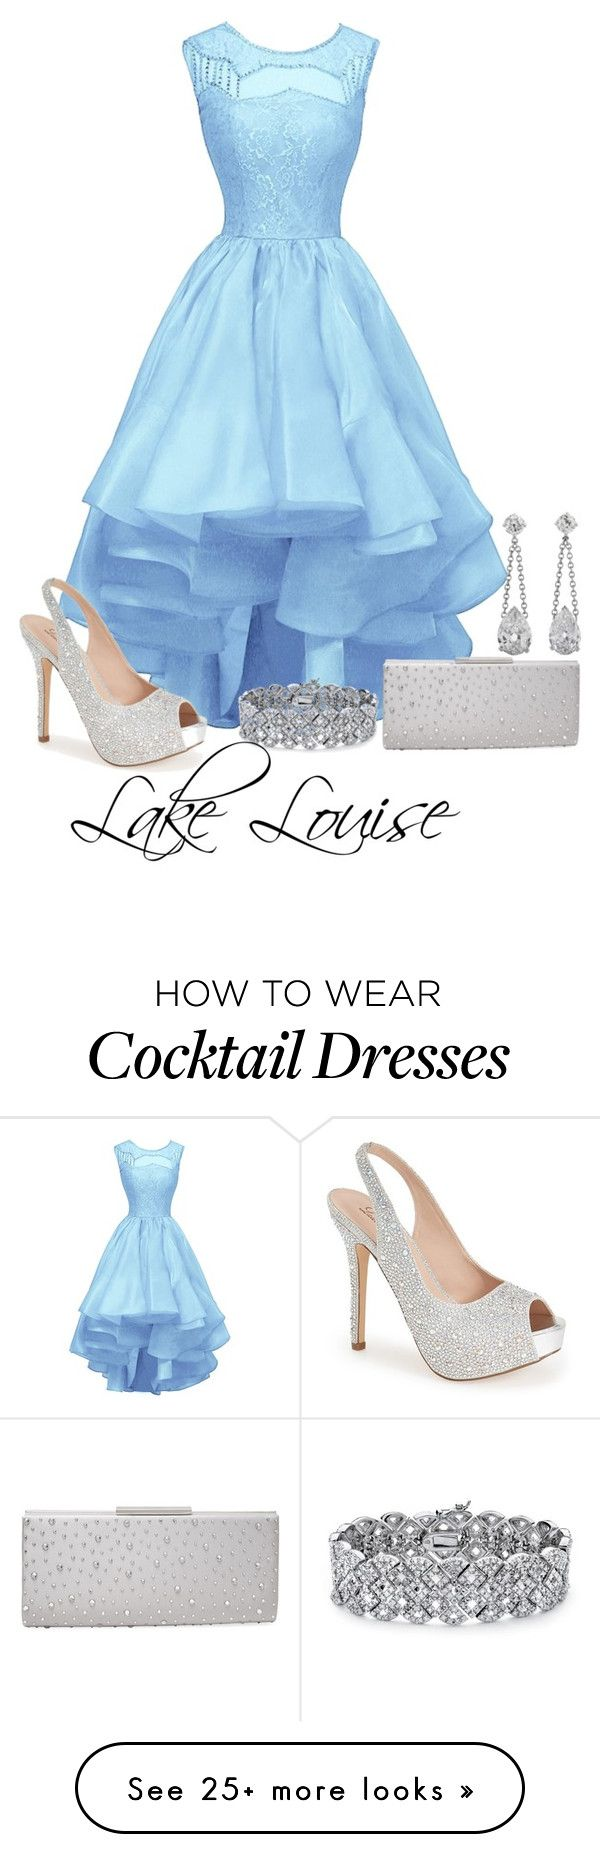 """""""Lake Louise"""" by sordida on Polyvore featuring Lauren Lorraine, Badgley Mischka and Palm Beach Jewelry"""